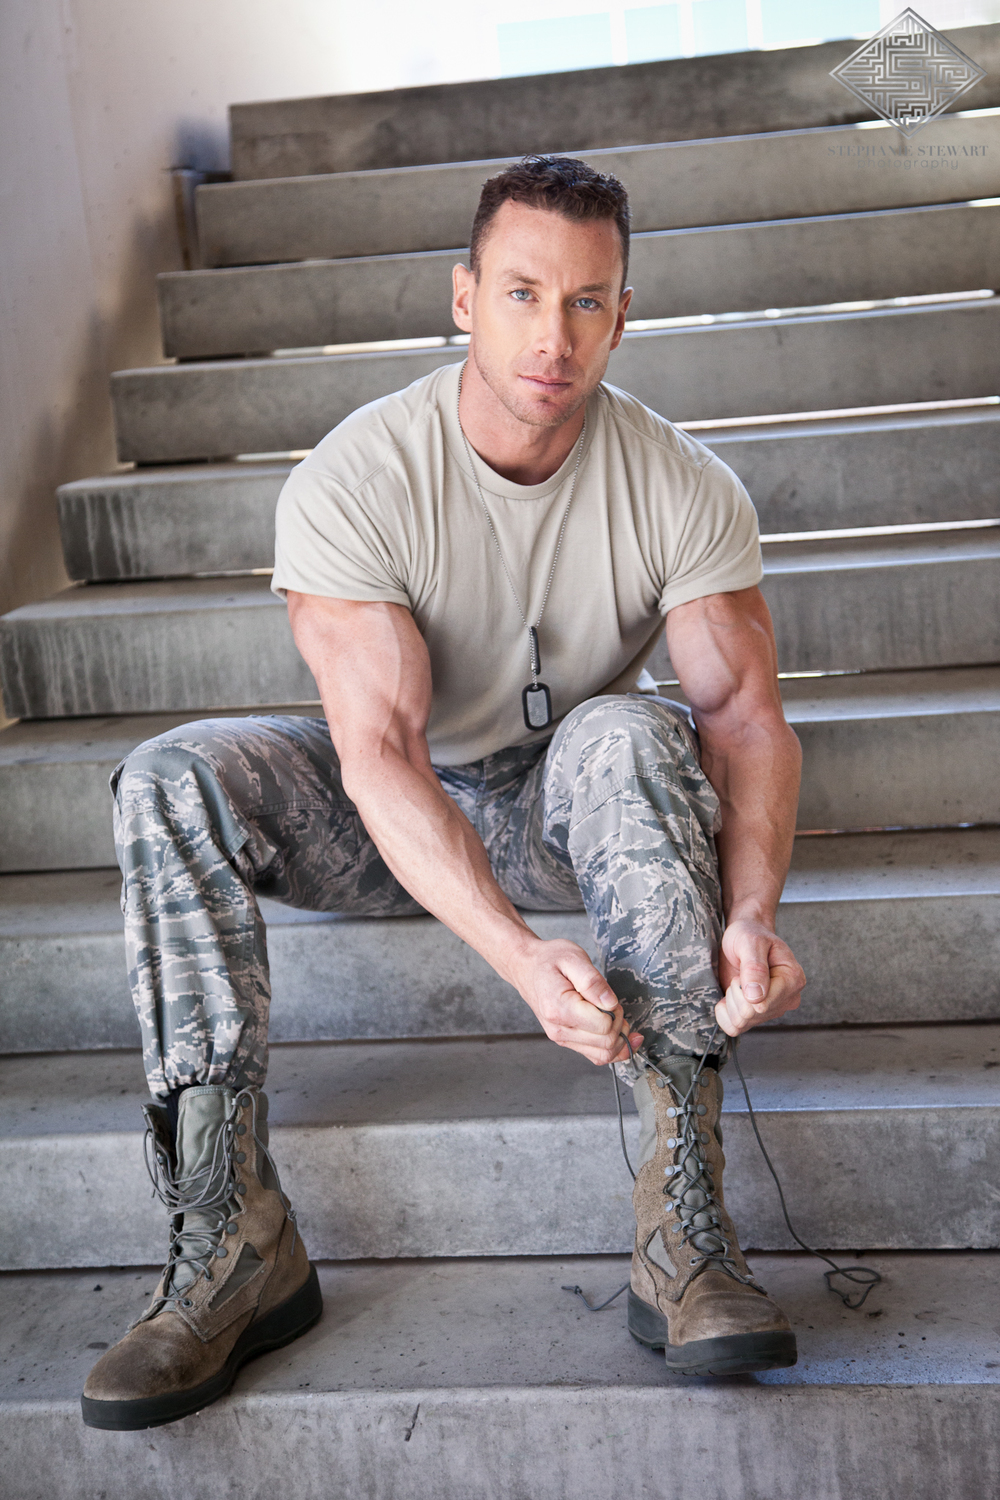 Mens-Physique-Fitness-Air-Force-Sexy-Man-In-Uniform-Albuquerque-Stephanie-Stewart-Photography